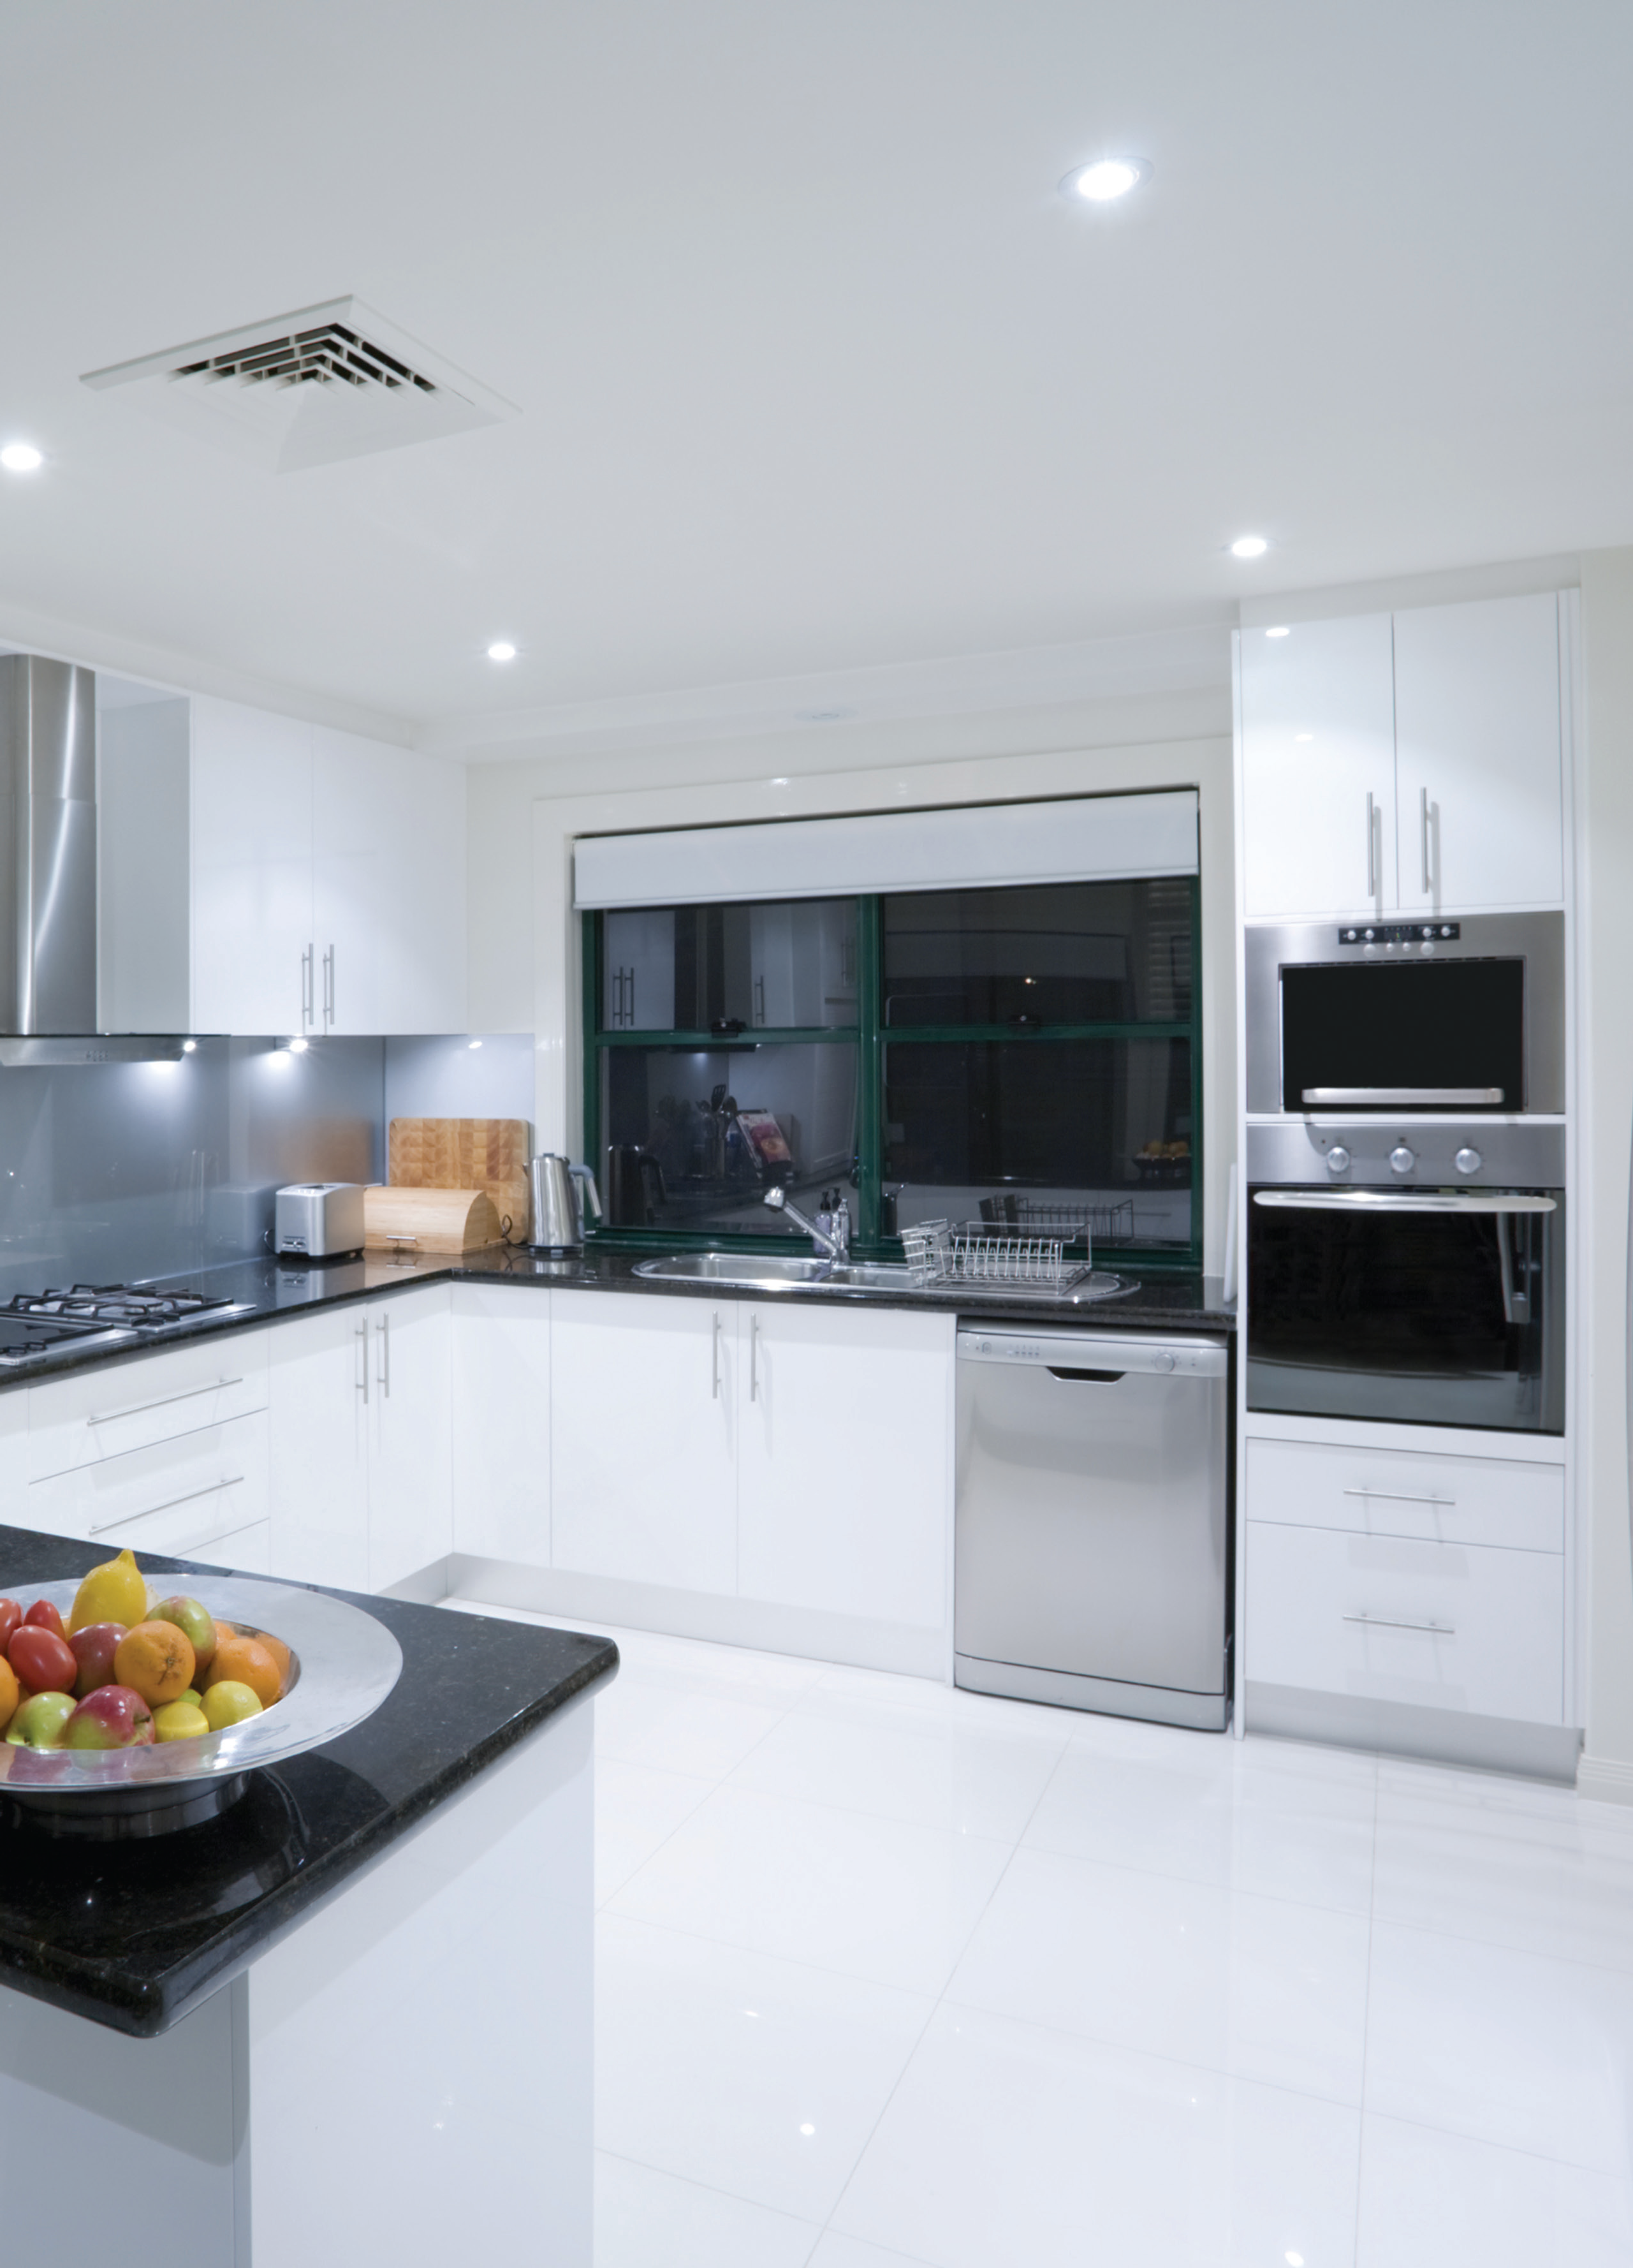 Flawless Kitchen Inspiration Built In Appliances From Nagold By Hafele Built In Kitchen Appliances Kitchen Inspirations Integrated Kitchen Appliances